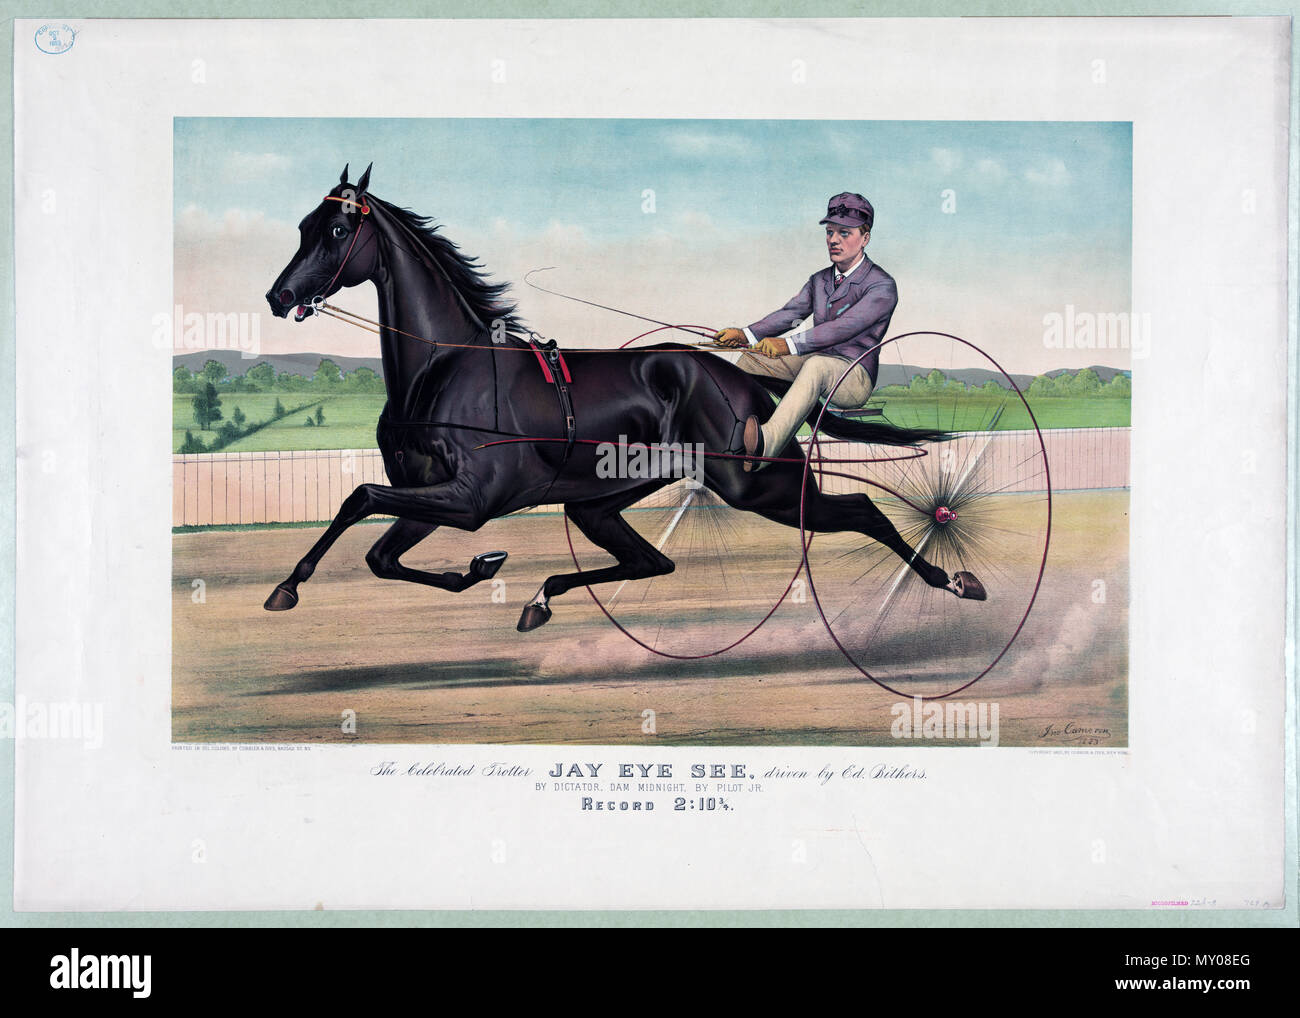 19th Century Horse Racing illustration c 1883.jpg - Stock Image